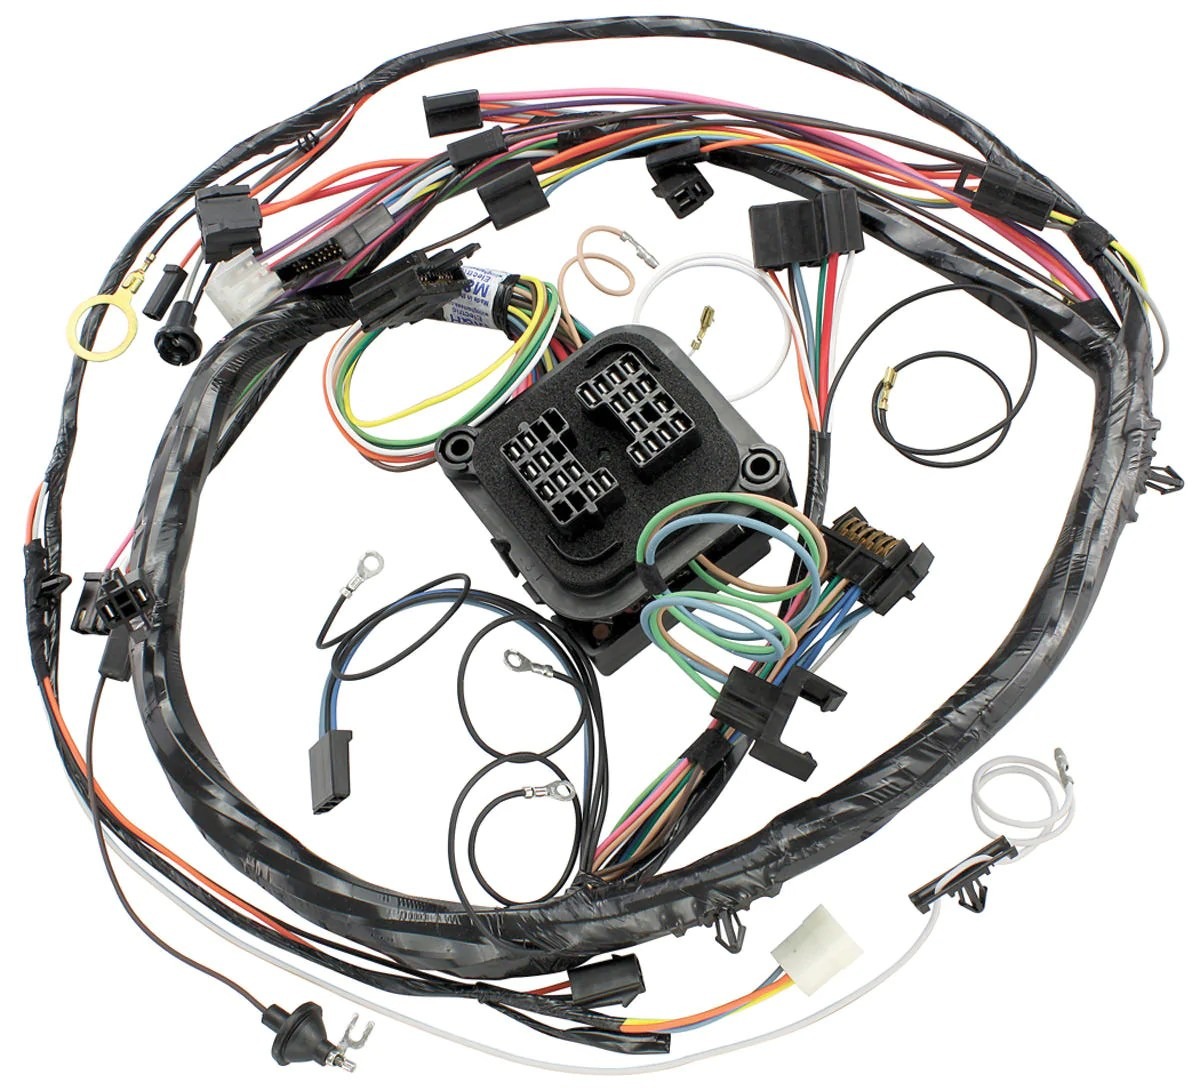 hight resolution of 1970 chevelle and el camino ss dash harness with factory gauges hi chevelle dash wiring harness main for cars with factory gauges 1970